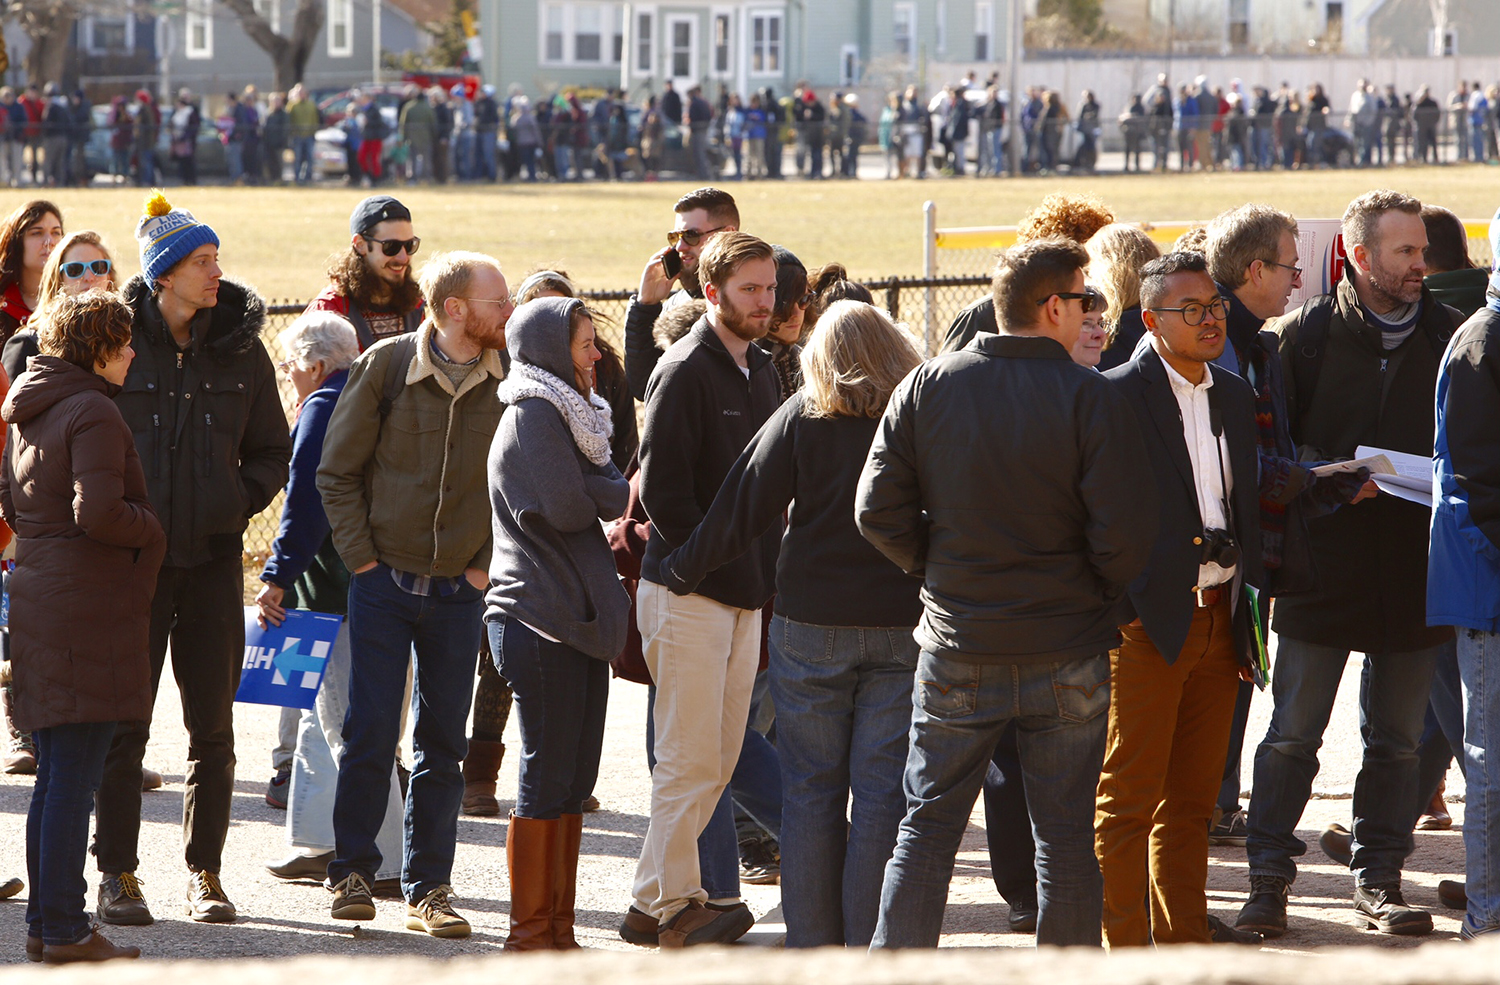 Thousands of Democratic voters wait in line to caucus at Deering High School in Portland on Sunday. Carl D. Walsh/Staff Photographer